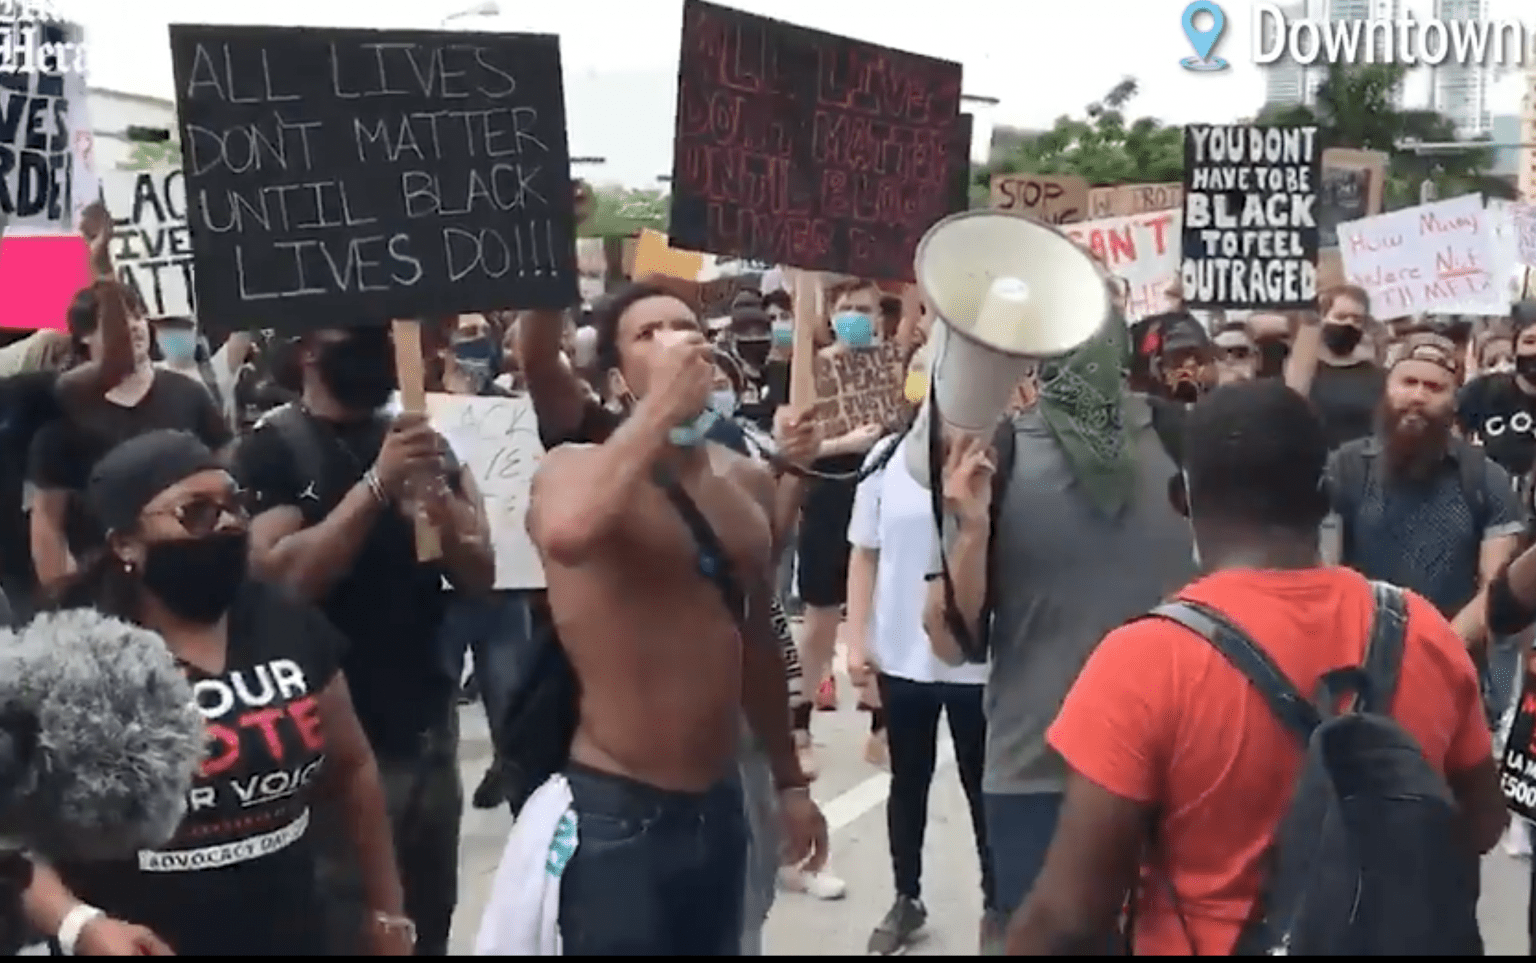 BLM organizer facing felony charges after stealing flags, resisting arrest, and obstructing a public street